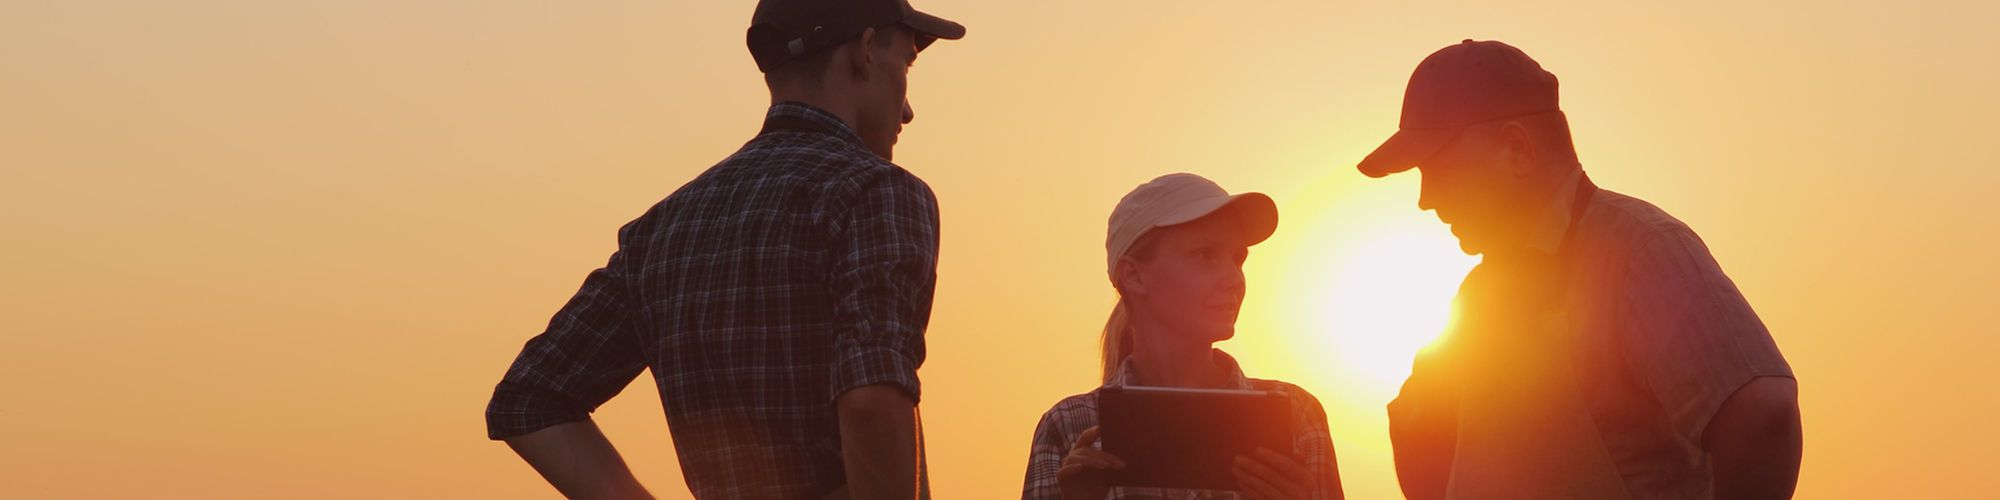 3 farmers in conversation at sunset